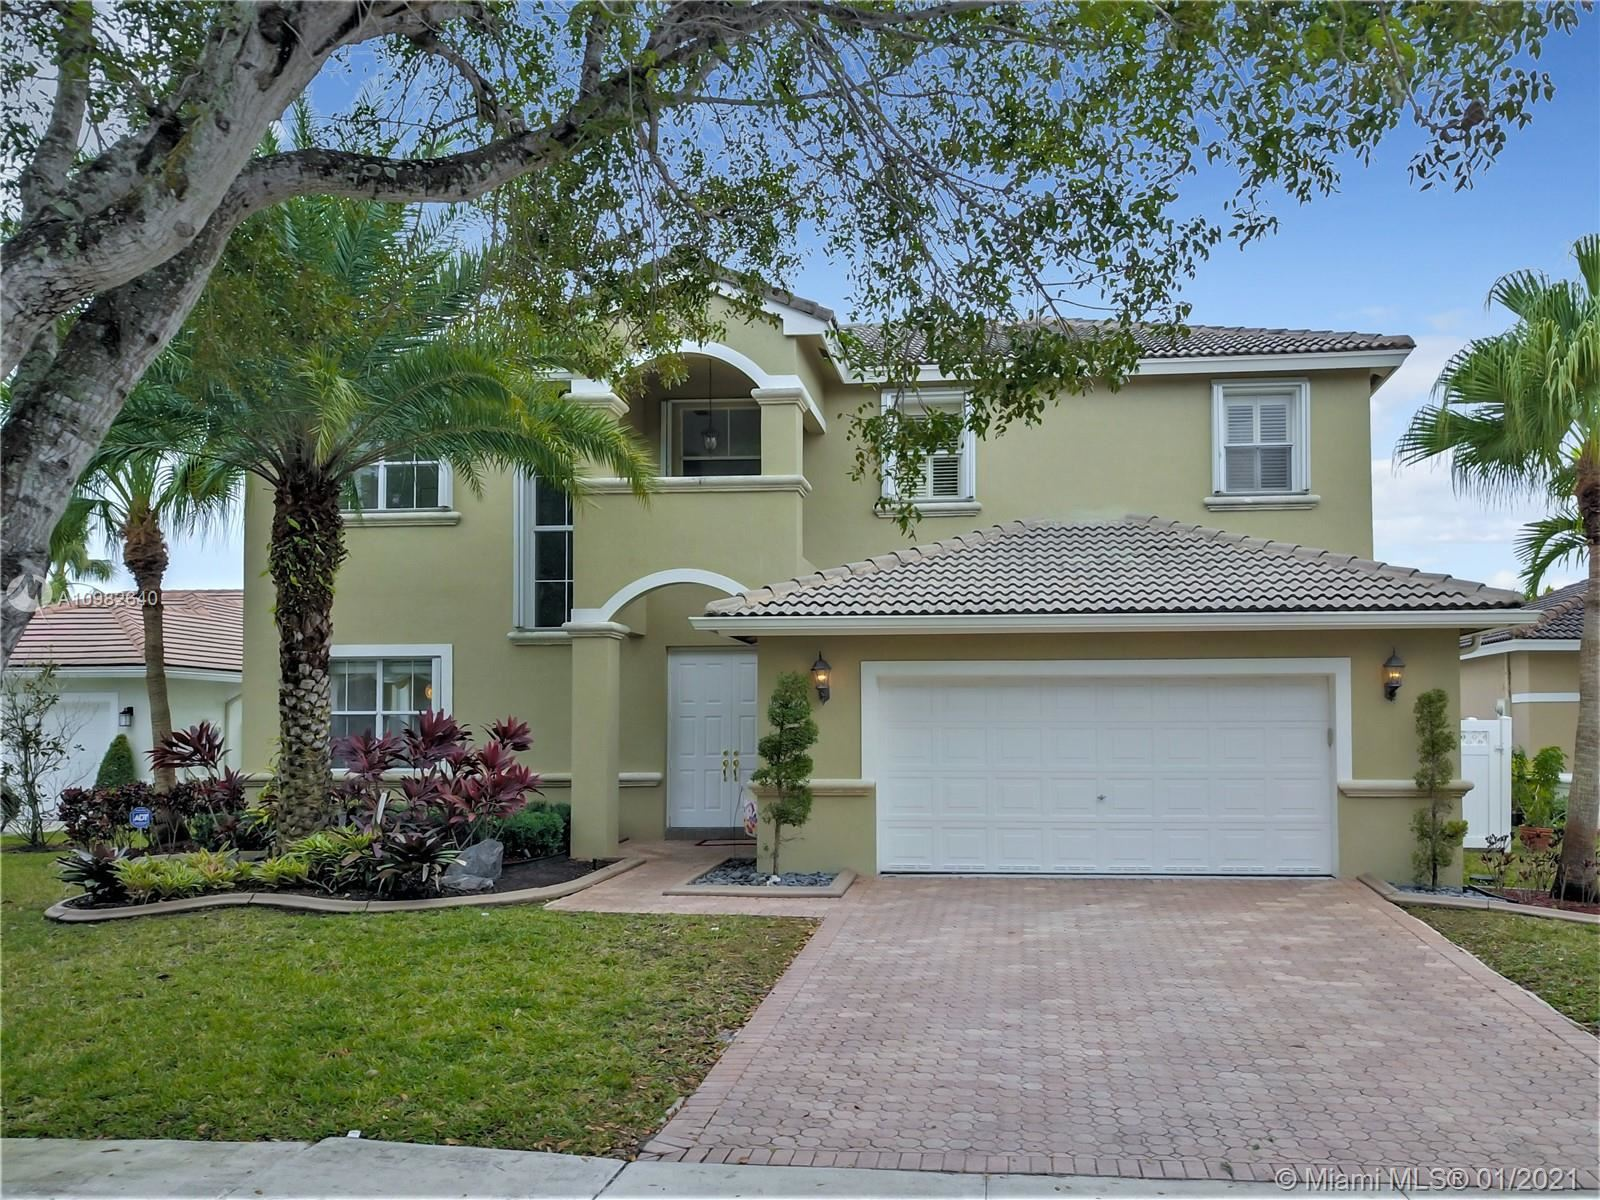 2327 NW 187th Ave, Pembroke Pines, FL 33029 - #: A10982640